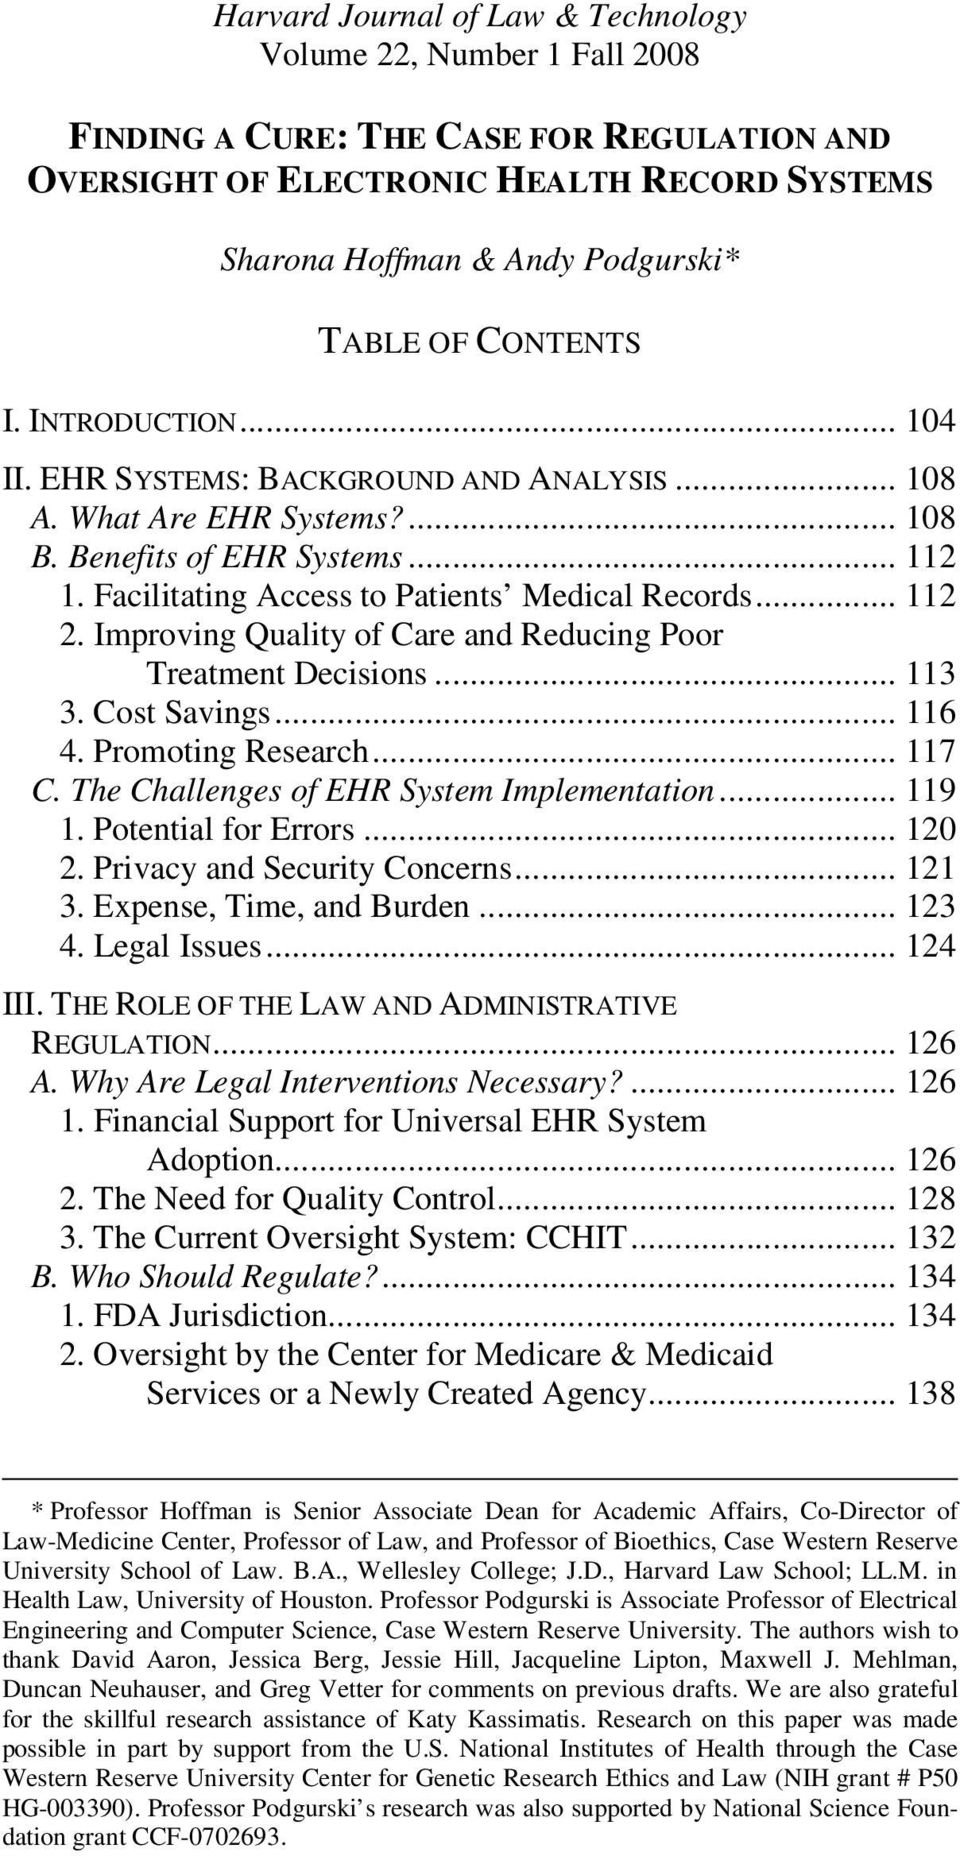 .. 112 2. Improving Quality of Care and Reducing Poor Treatment Decisions... 113 3. Cost Savings... 116 4. Promoting Research... 117 C. The Challenges of EHR System Implementation... 119 1.